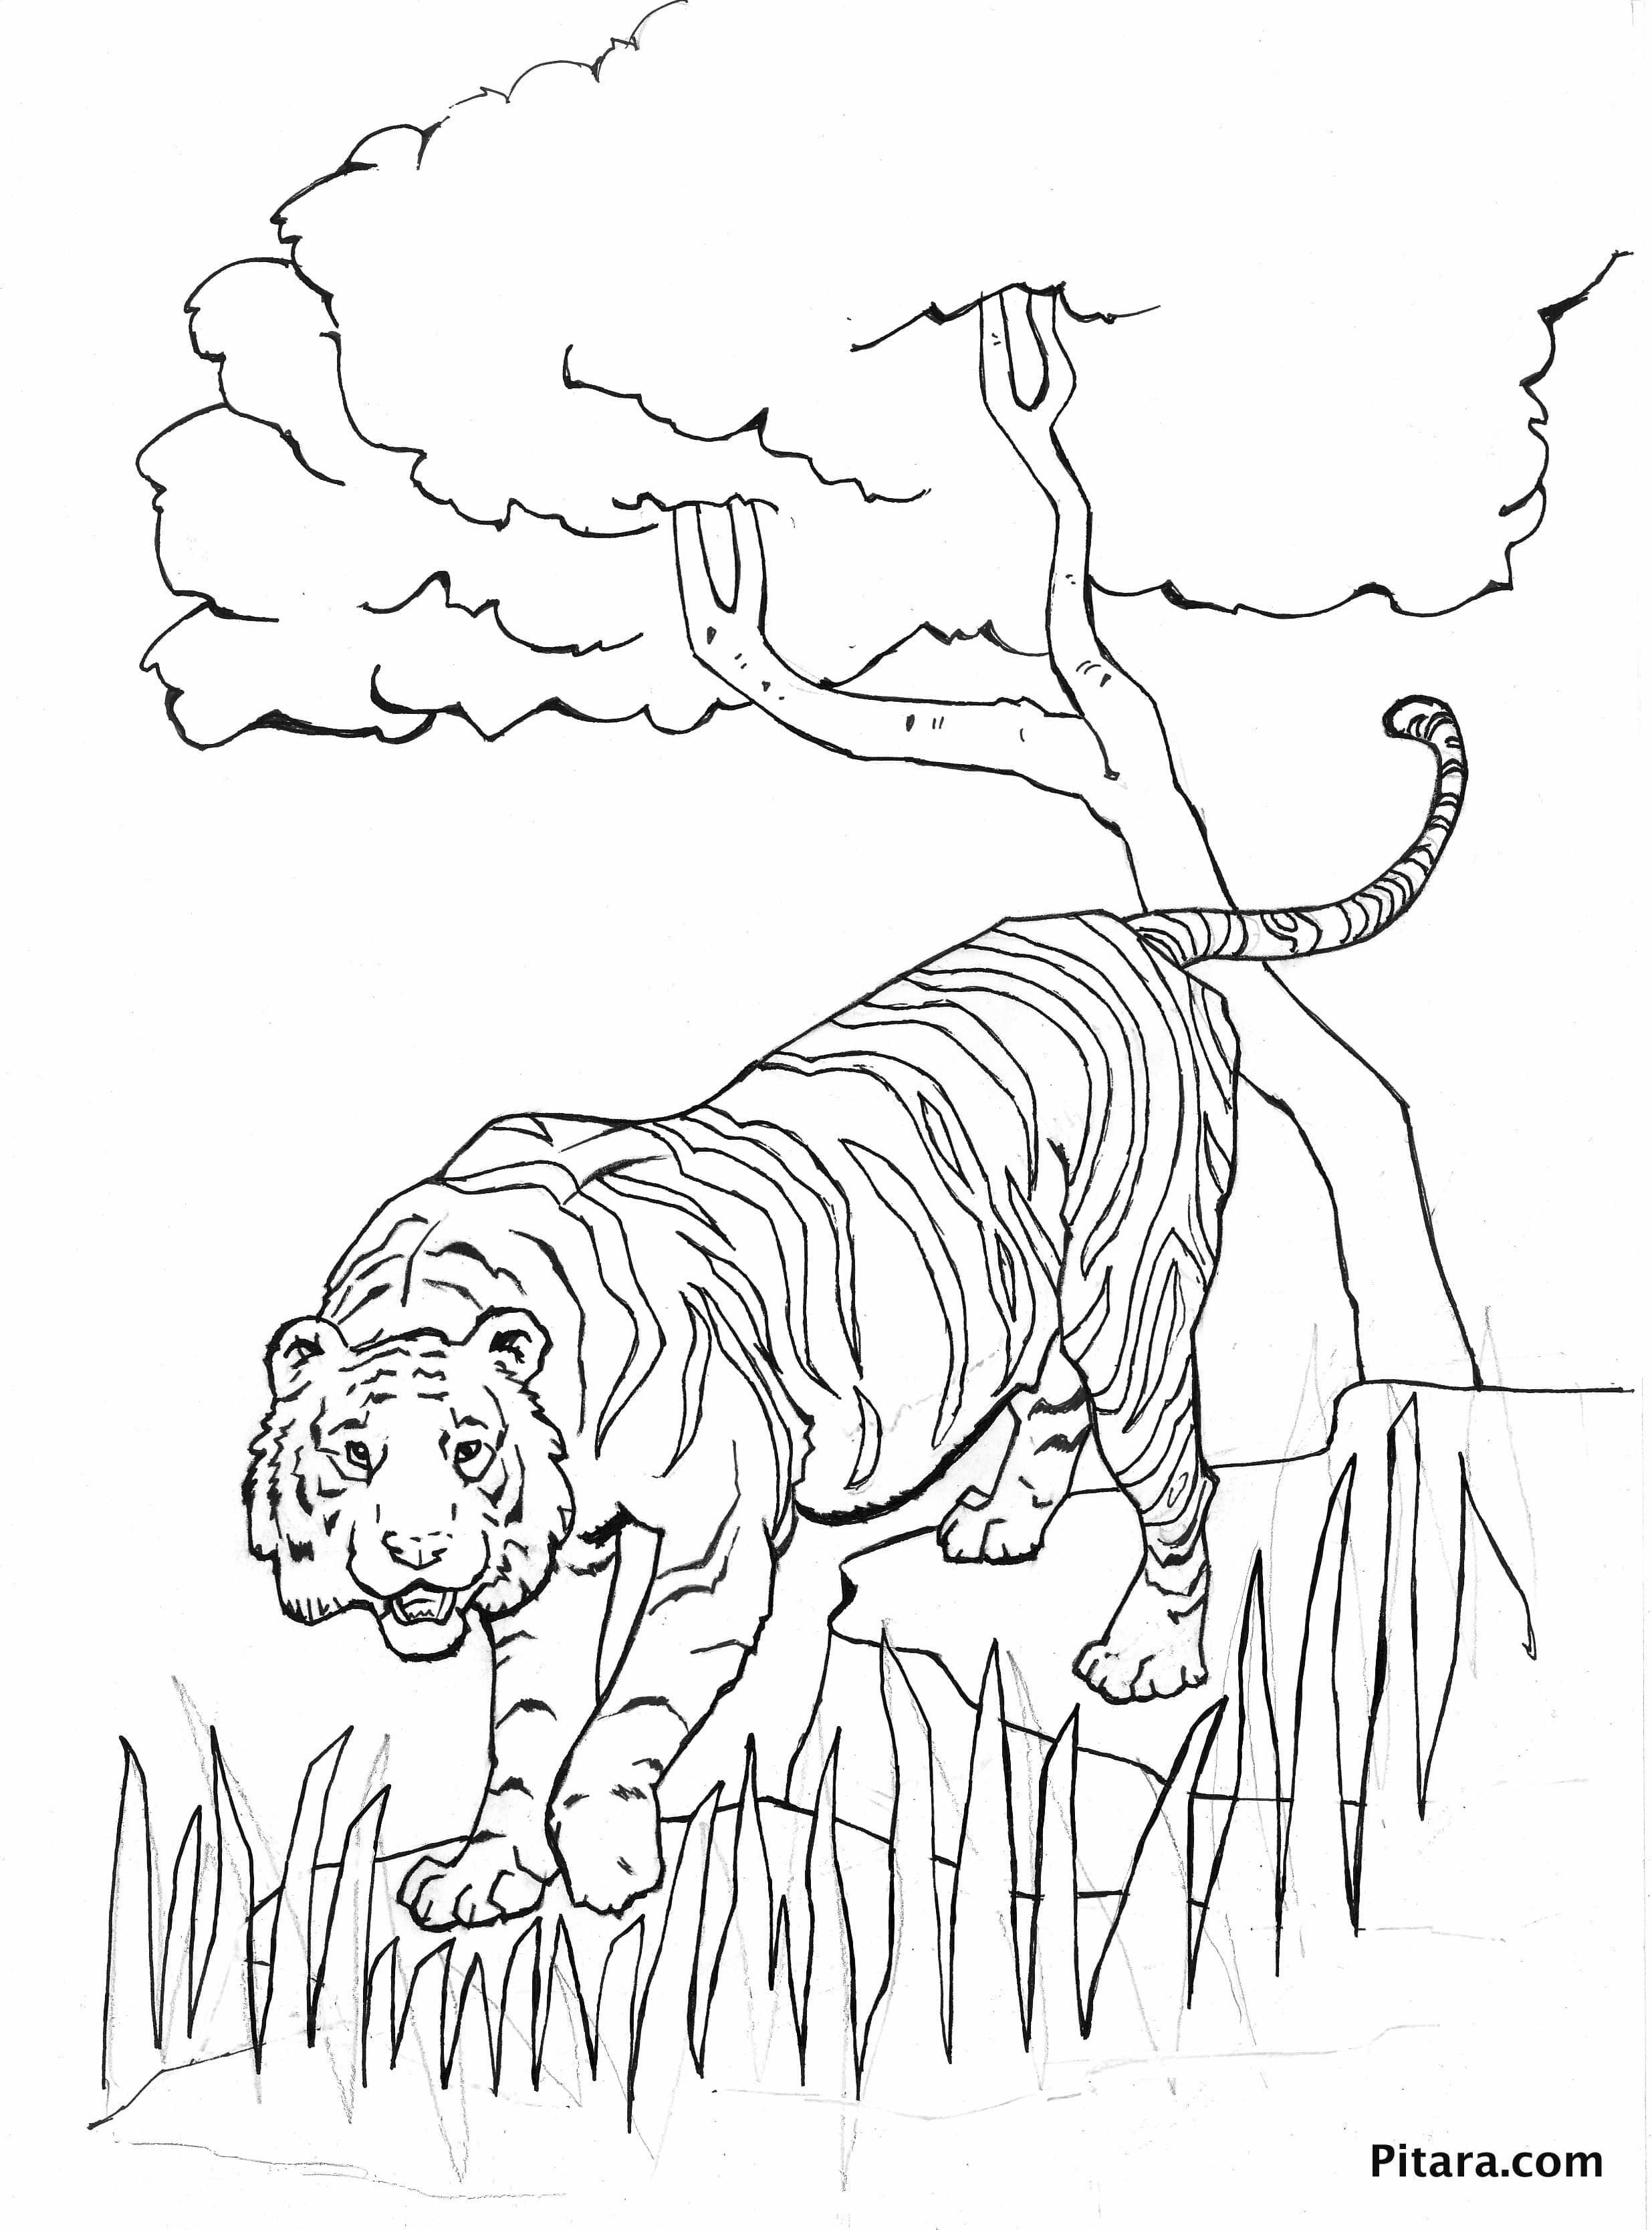 tiger u2013 coloring page pitara kids network